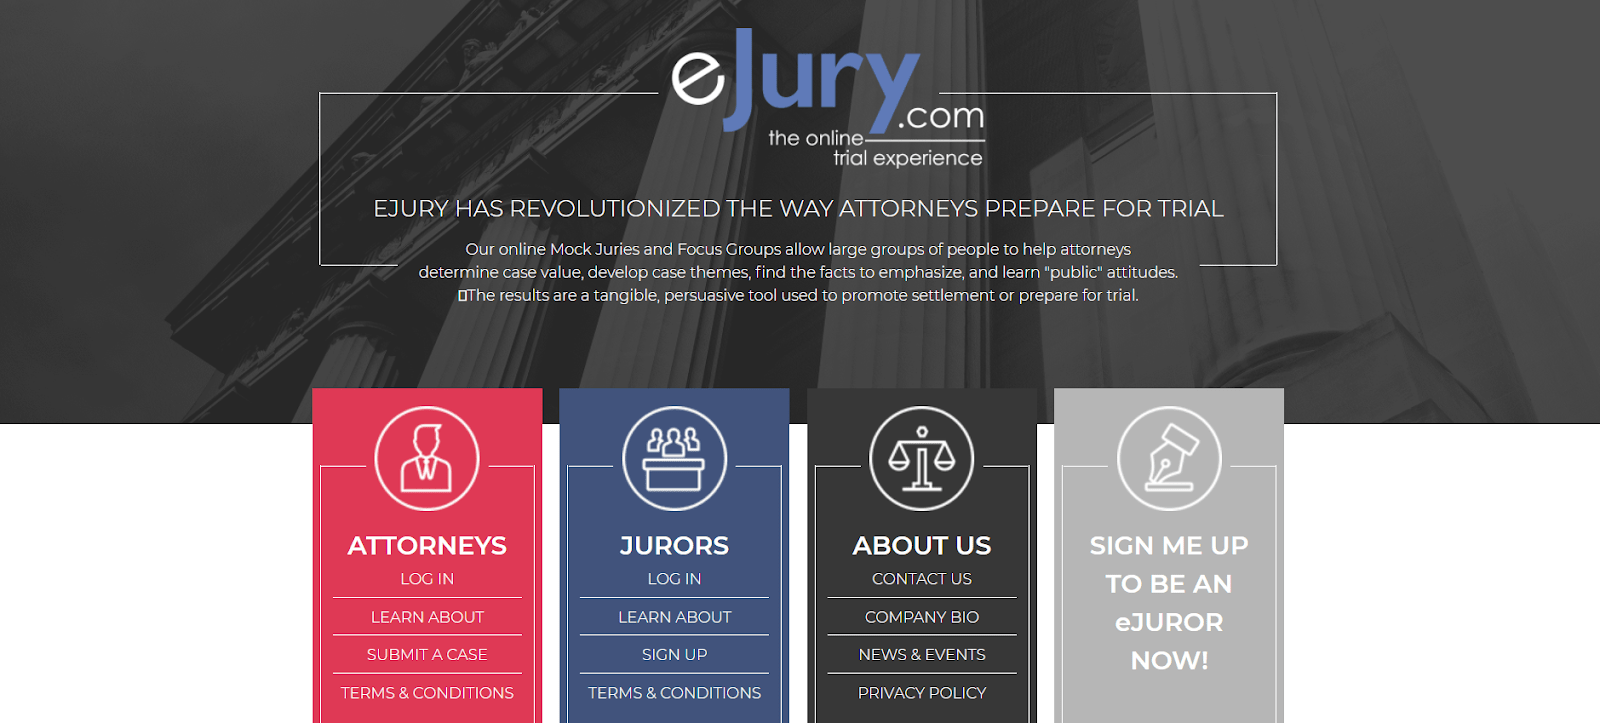 eJury website